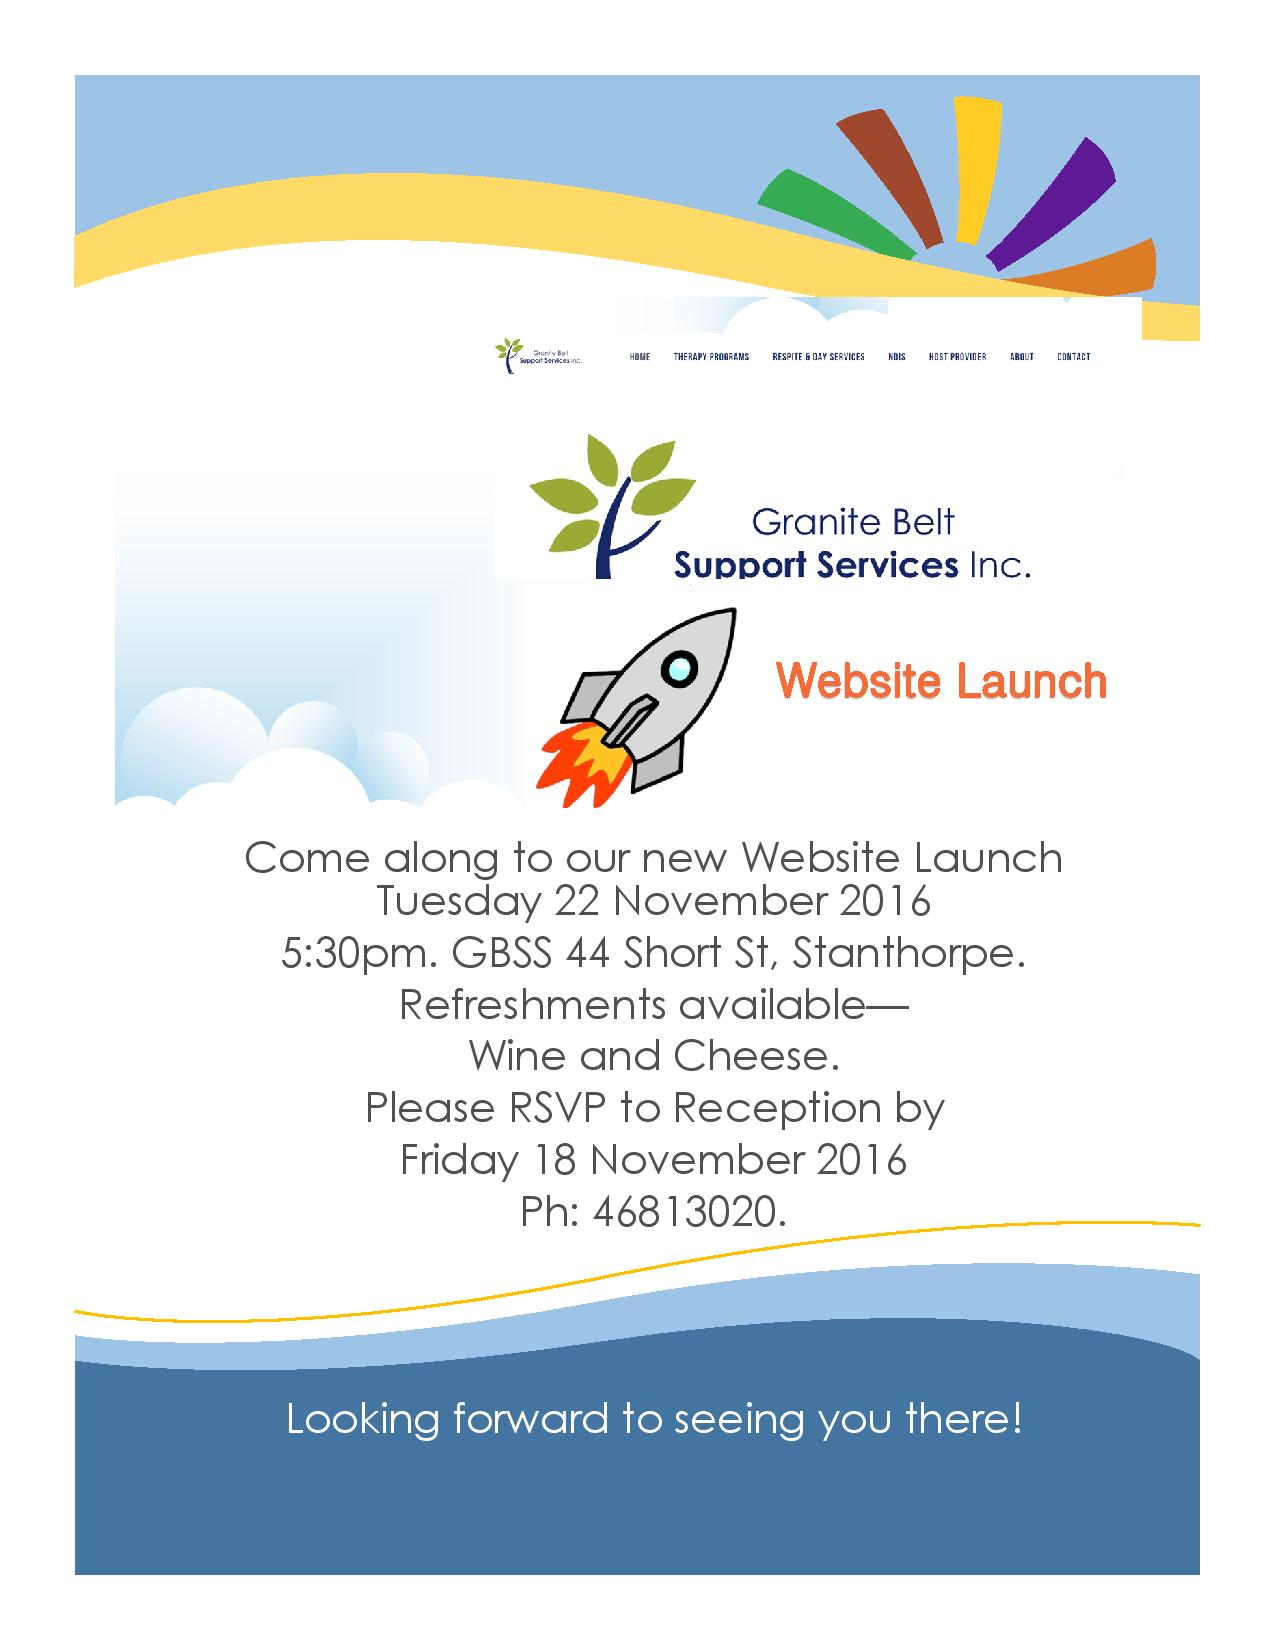 Come along to our website launch, 22 November 5:30pm